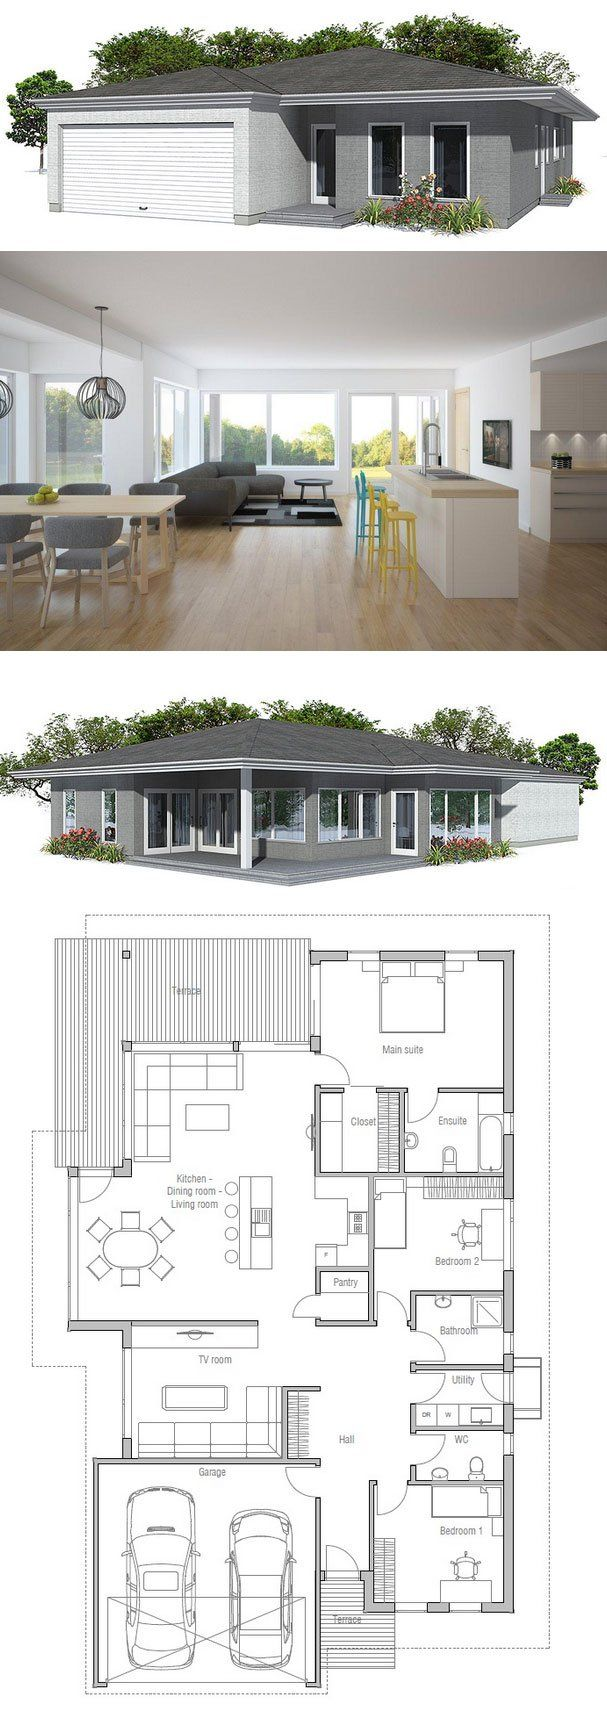 Modern House Plan With Covered Terracegarage For Two Cars Simple Dining Room Floor Plans Review